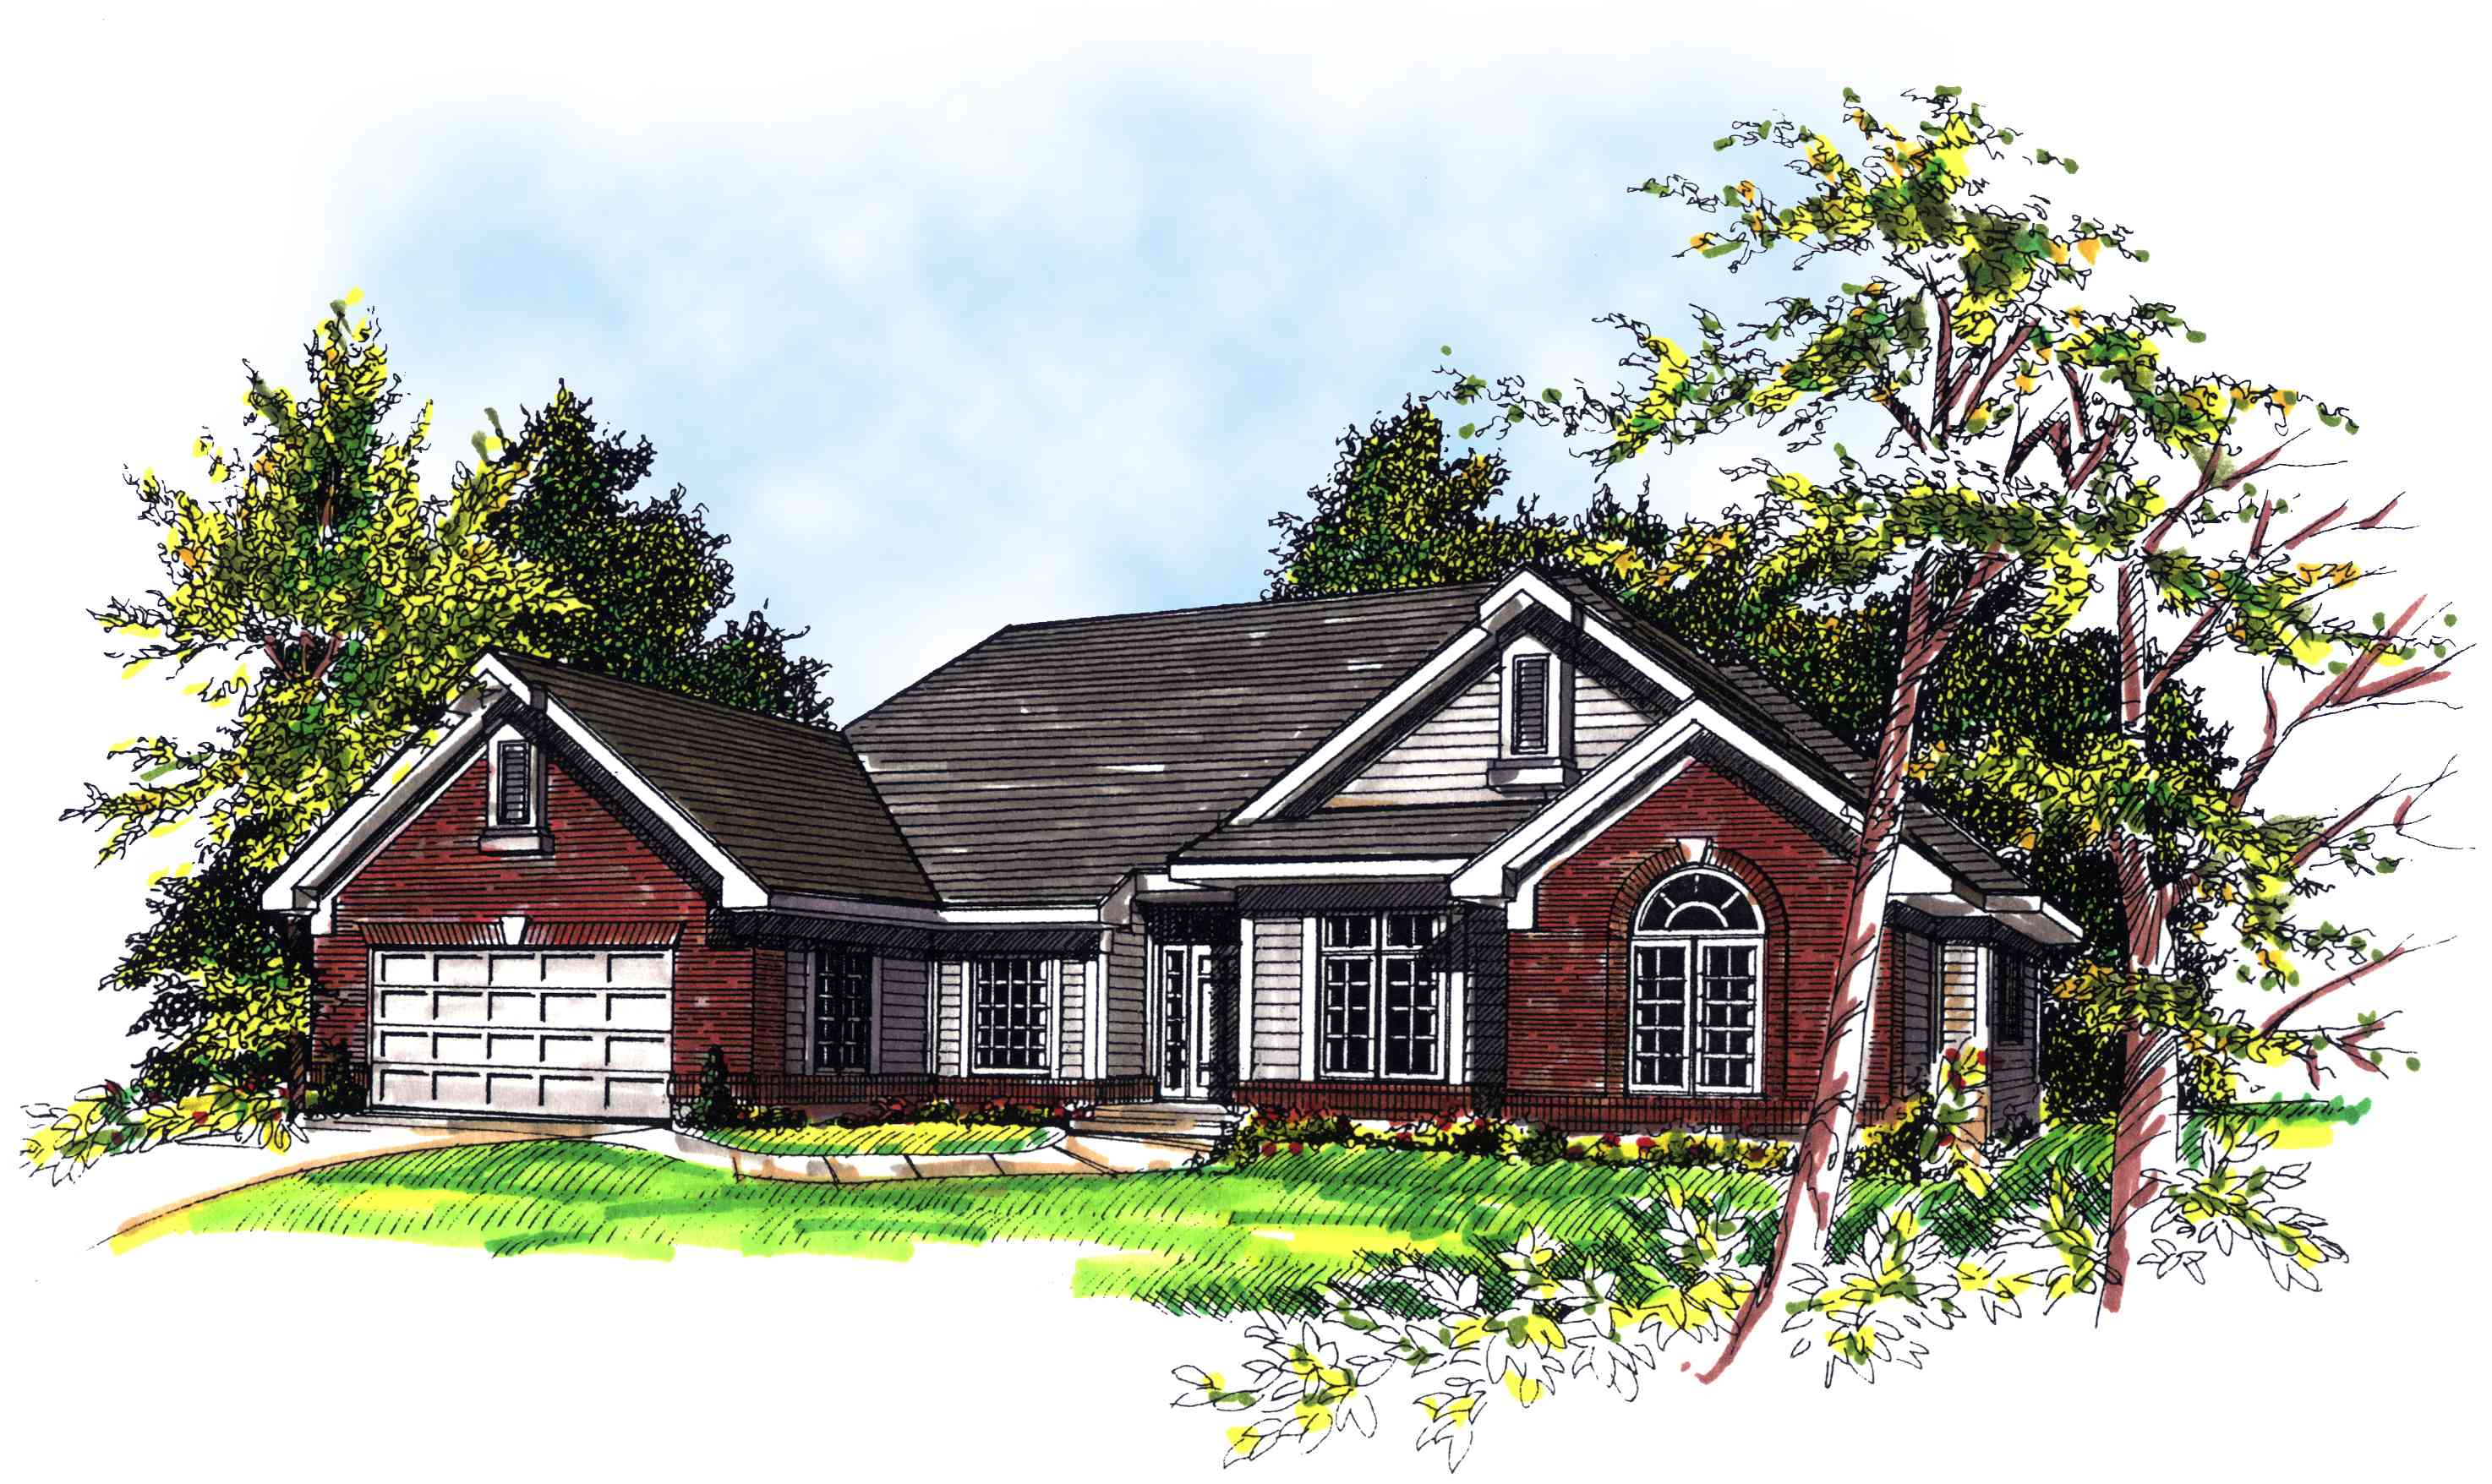 Cozy 3 bed ranch house plan 89516ah architectural for Cosy house plans